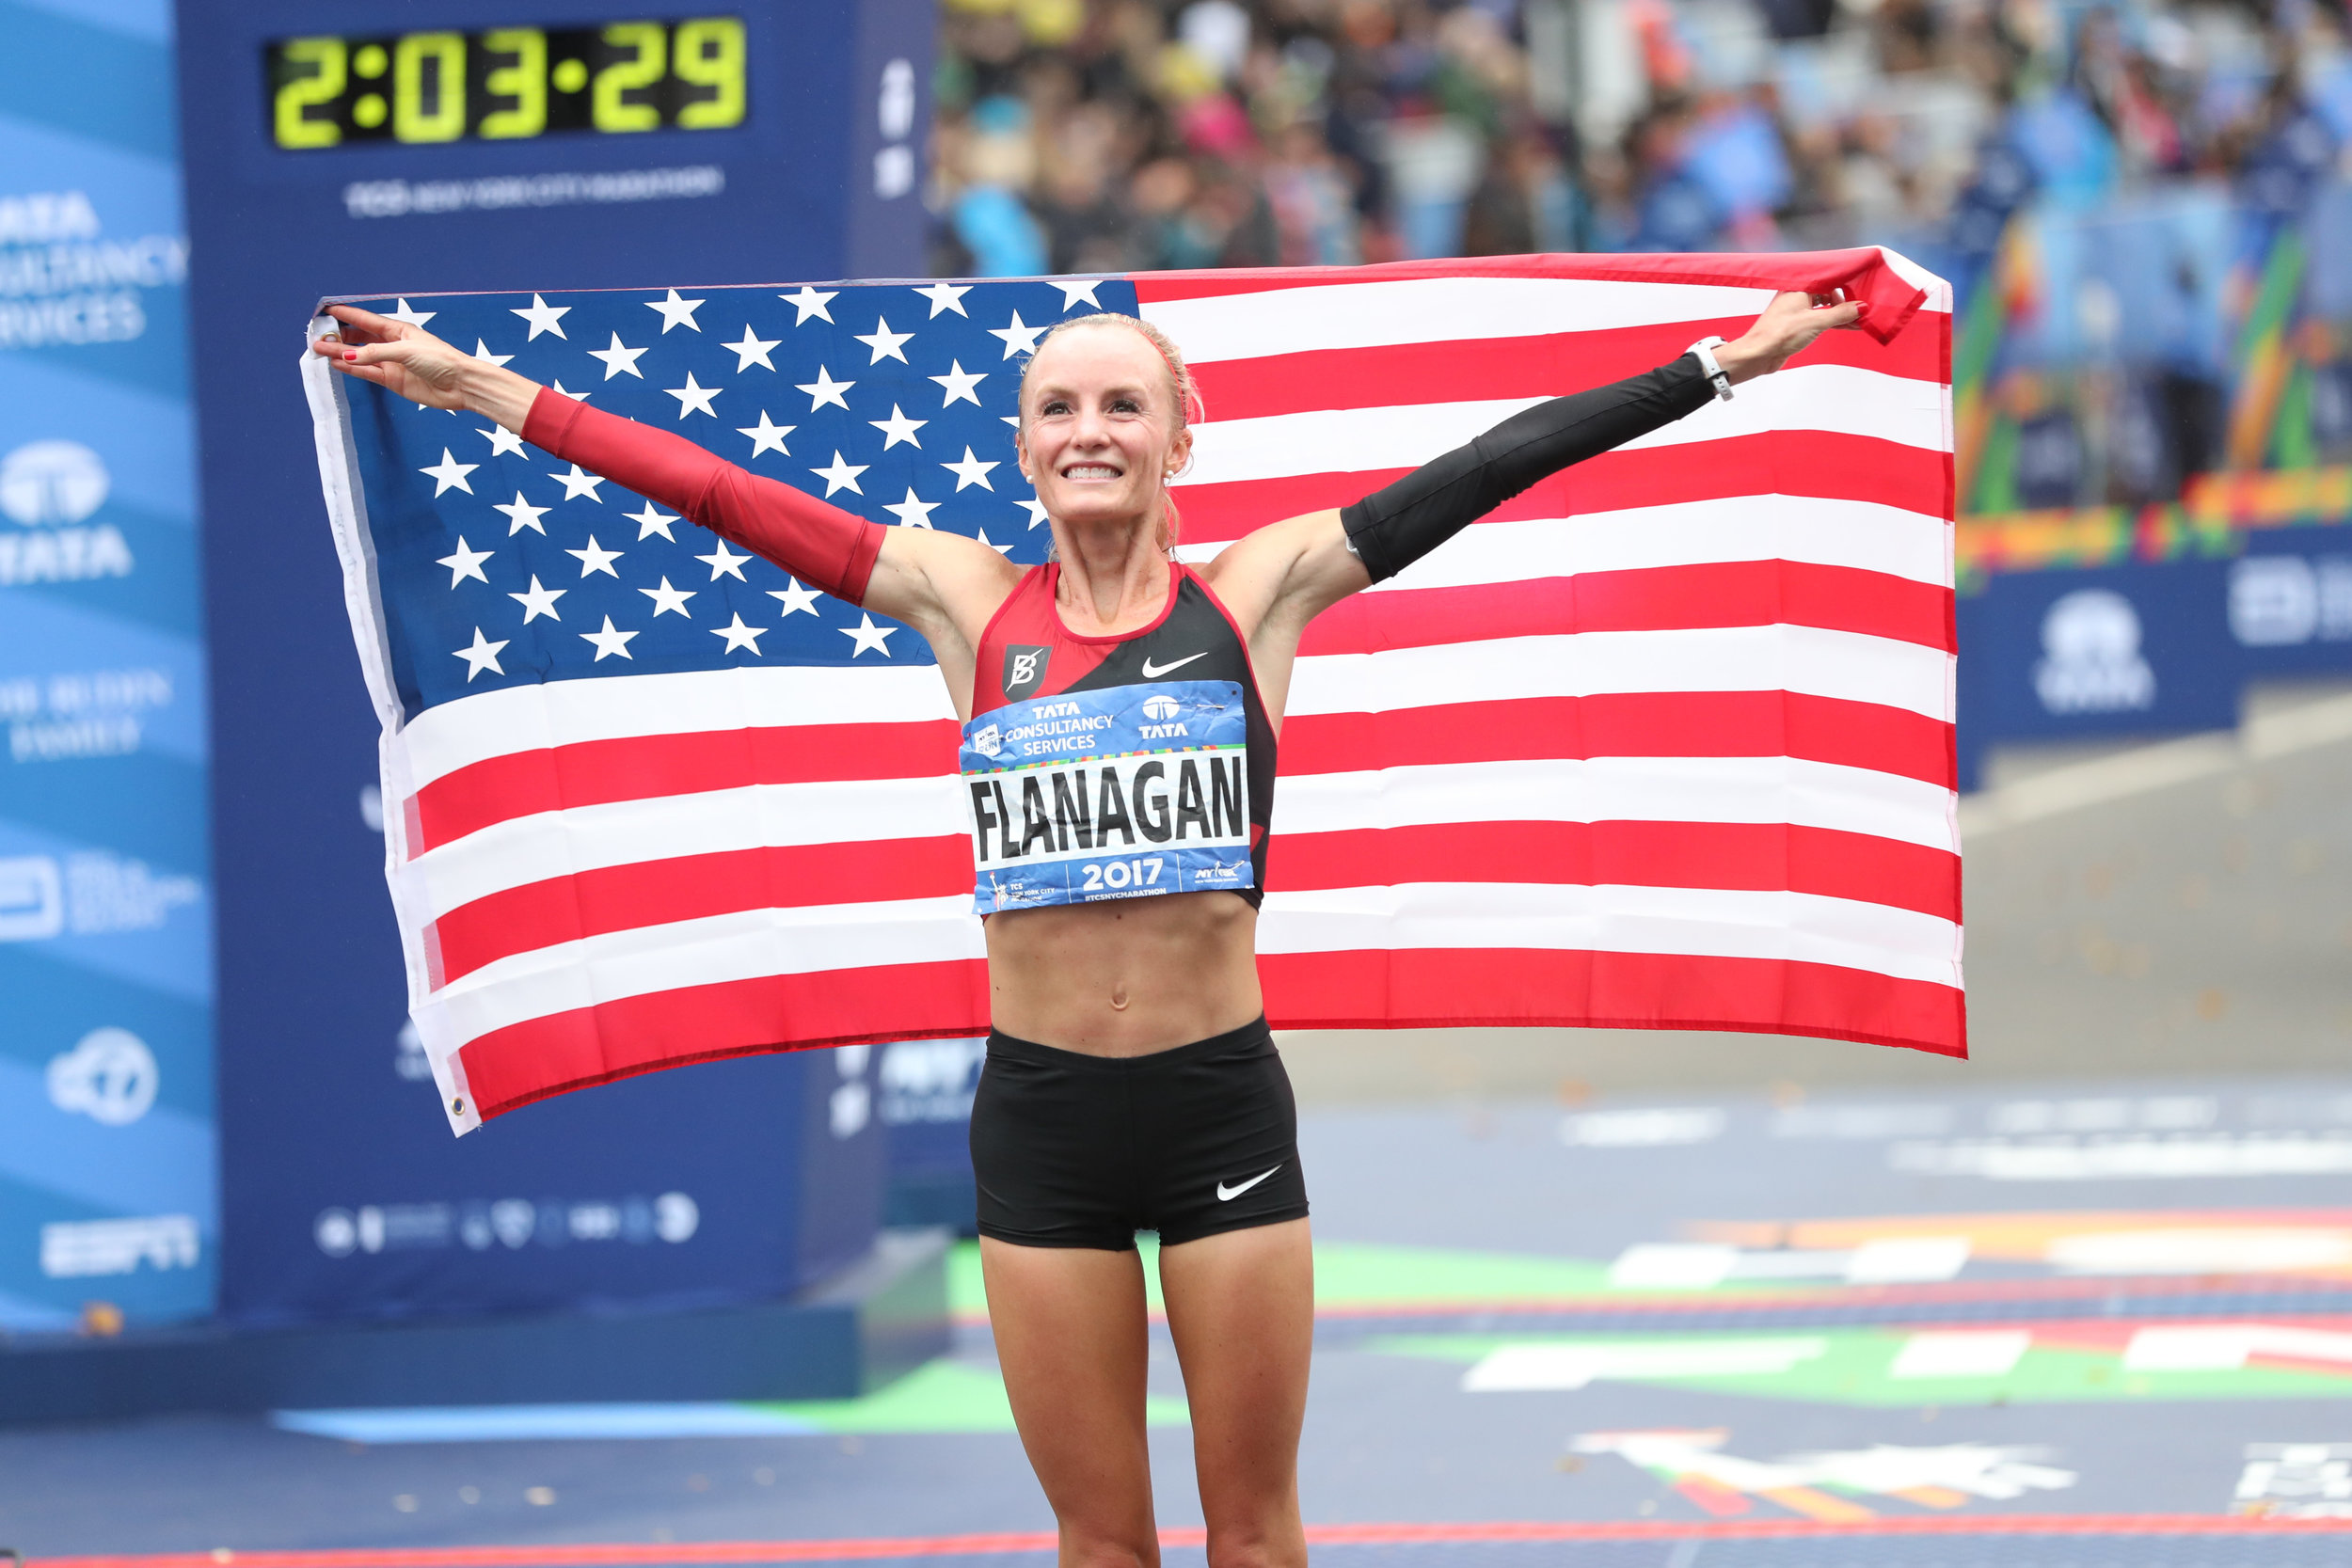 68d11fe73d Shalene Flanagan winning the NYC Marathon in 2017. This was the first time  an American